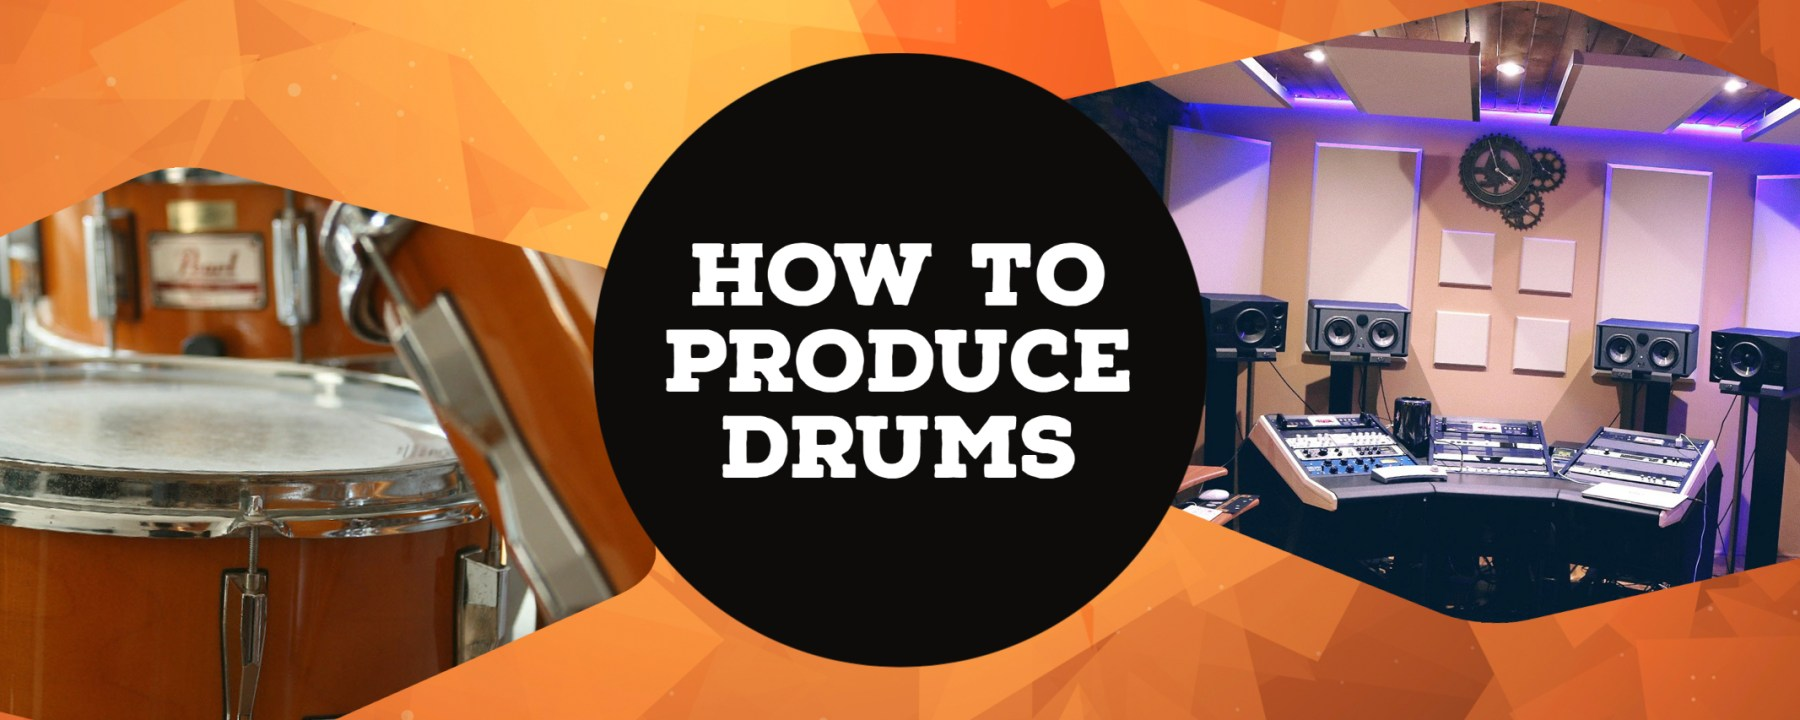 how to produce drums